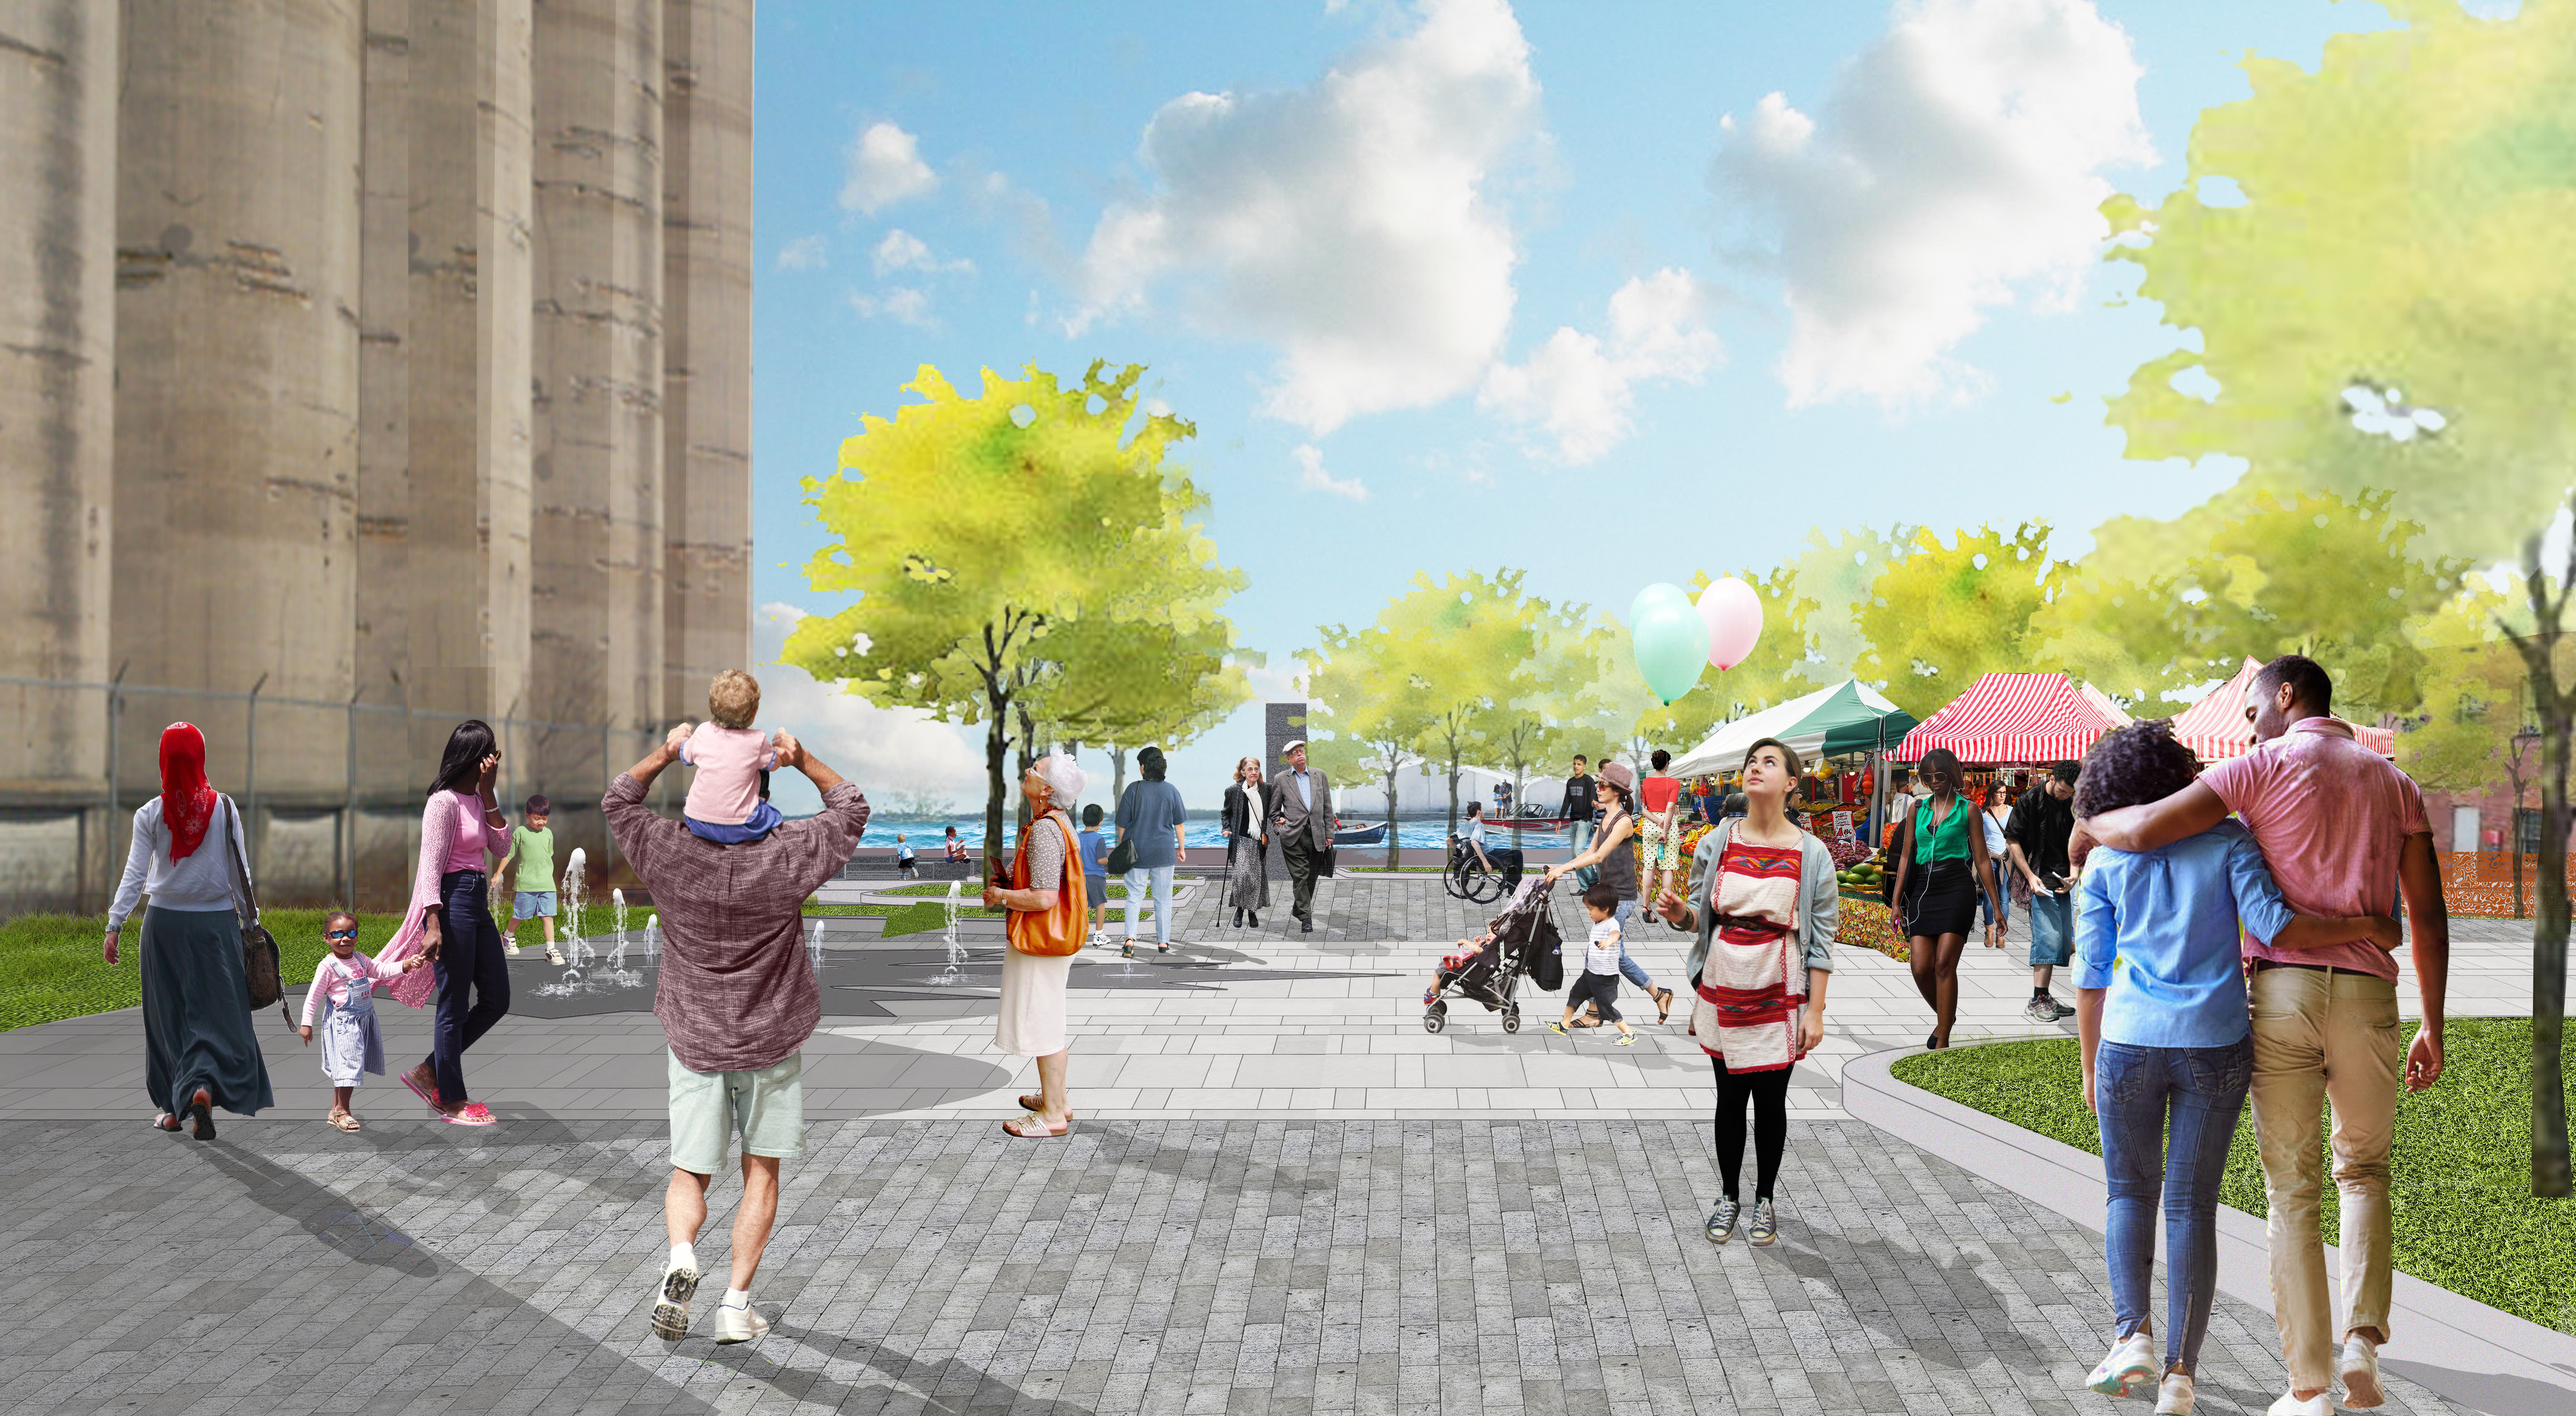 Artist's rendering from inside a planned public plaza space on the Canada Malting property, which is currently a derelict site on Toronto's waterfront. The image identifies people of all ages and abilities enjoying public space on the Toronto waterfront.